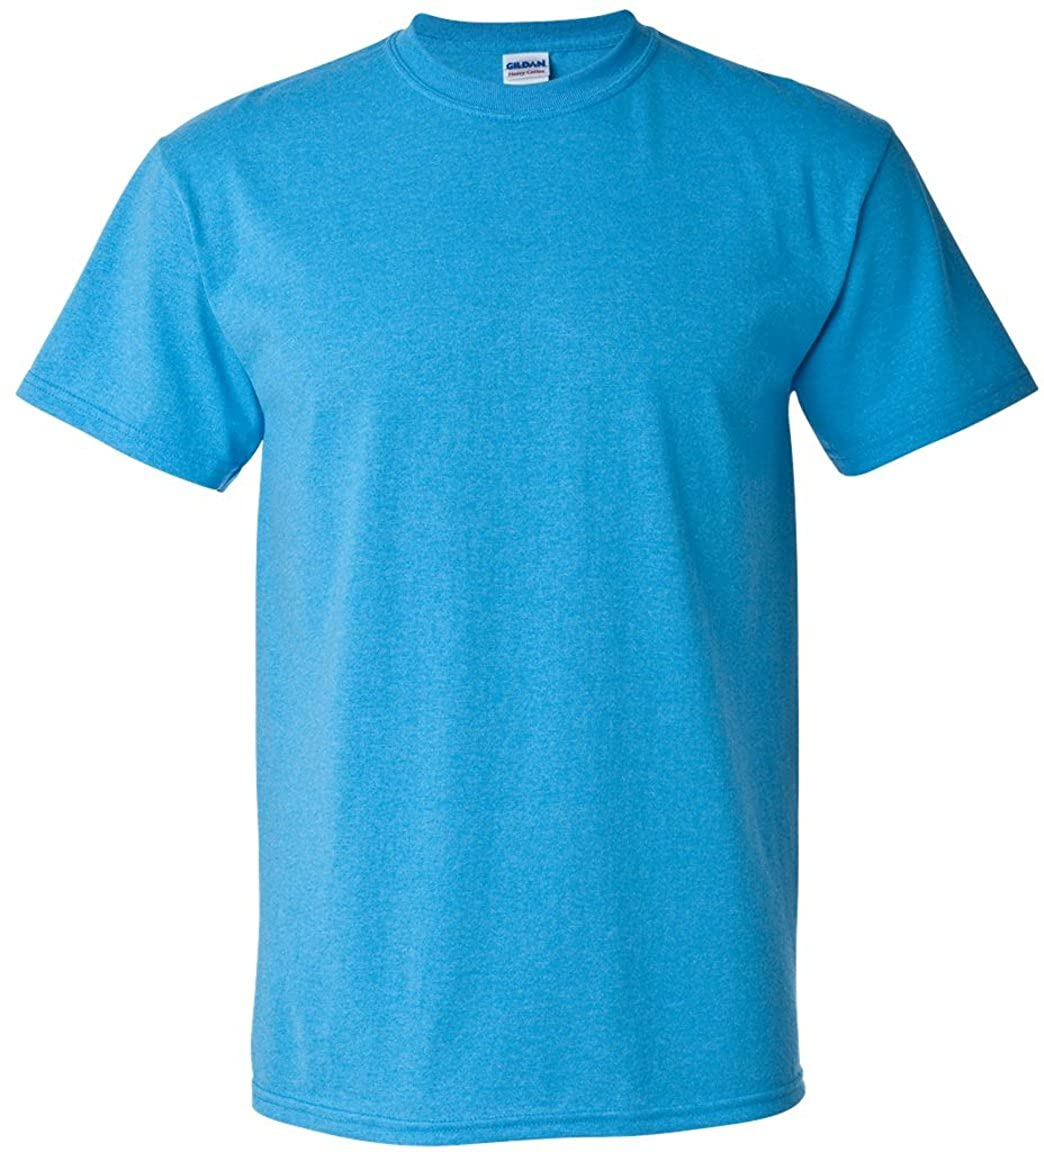 Gildan Mens Heavy CottonTM 5.3 Oz. T-Shirt Gildan G500